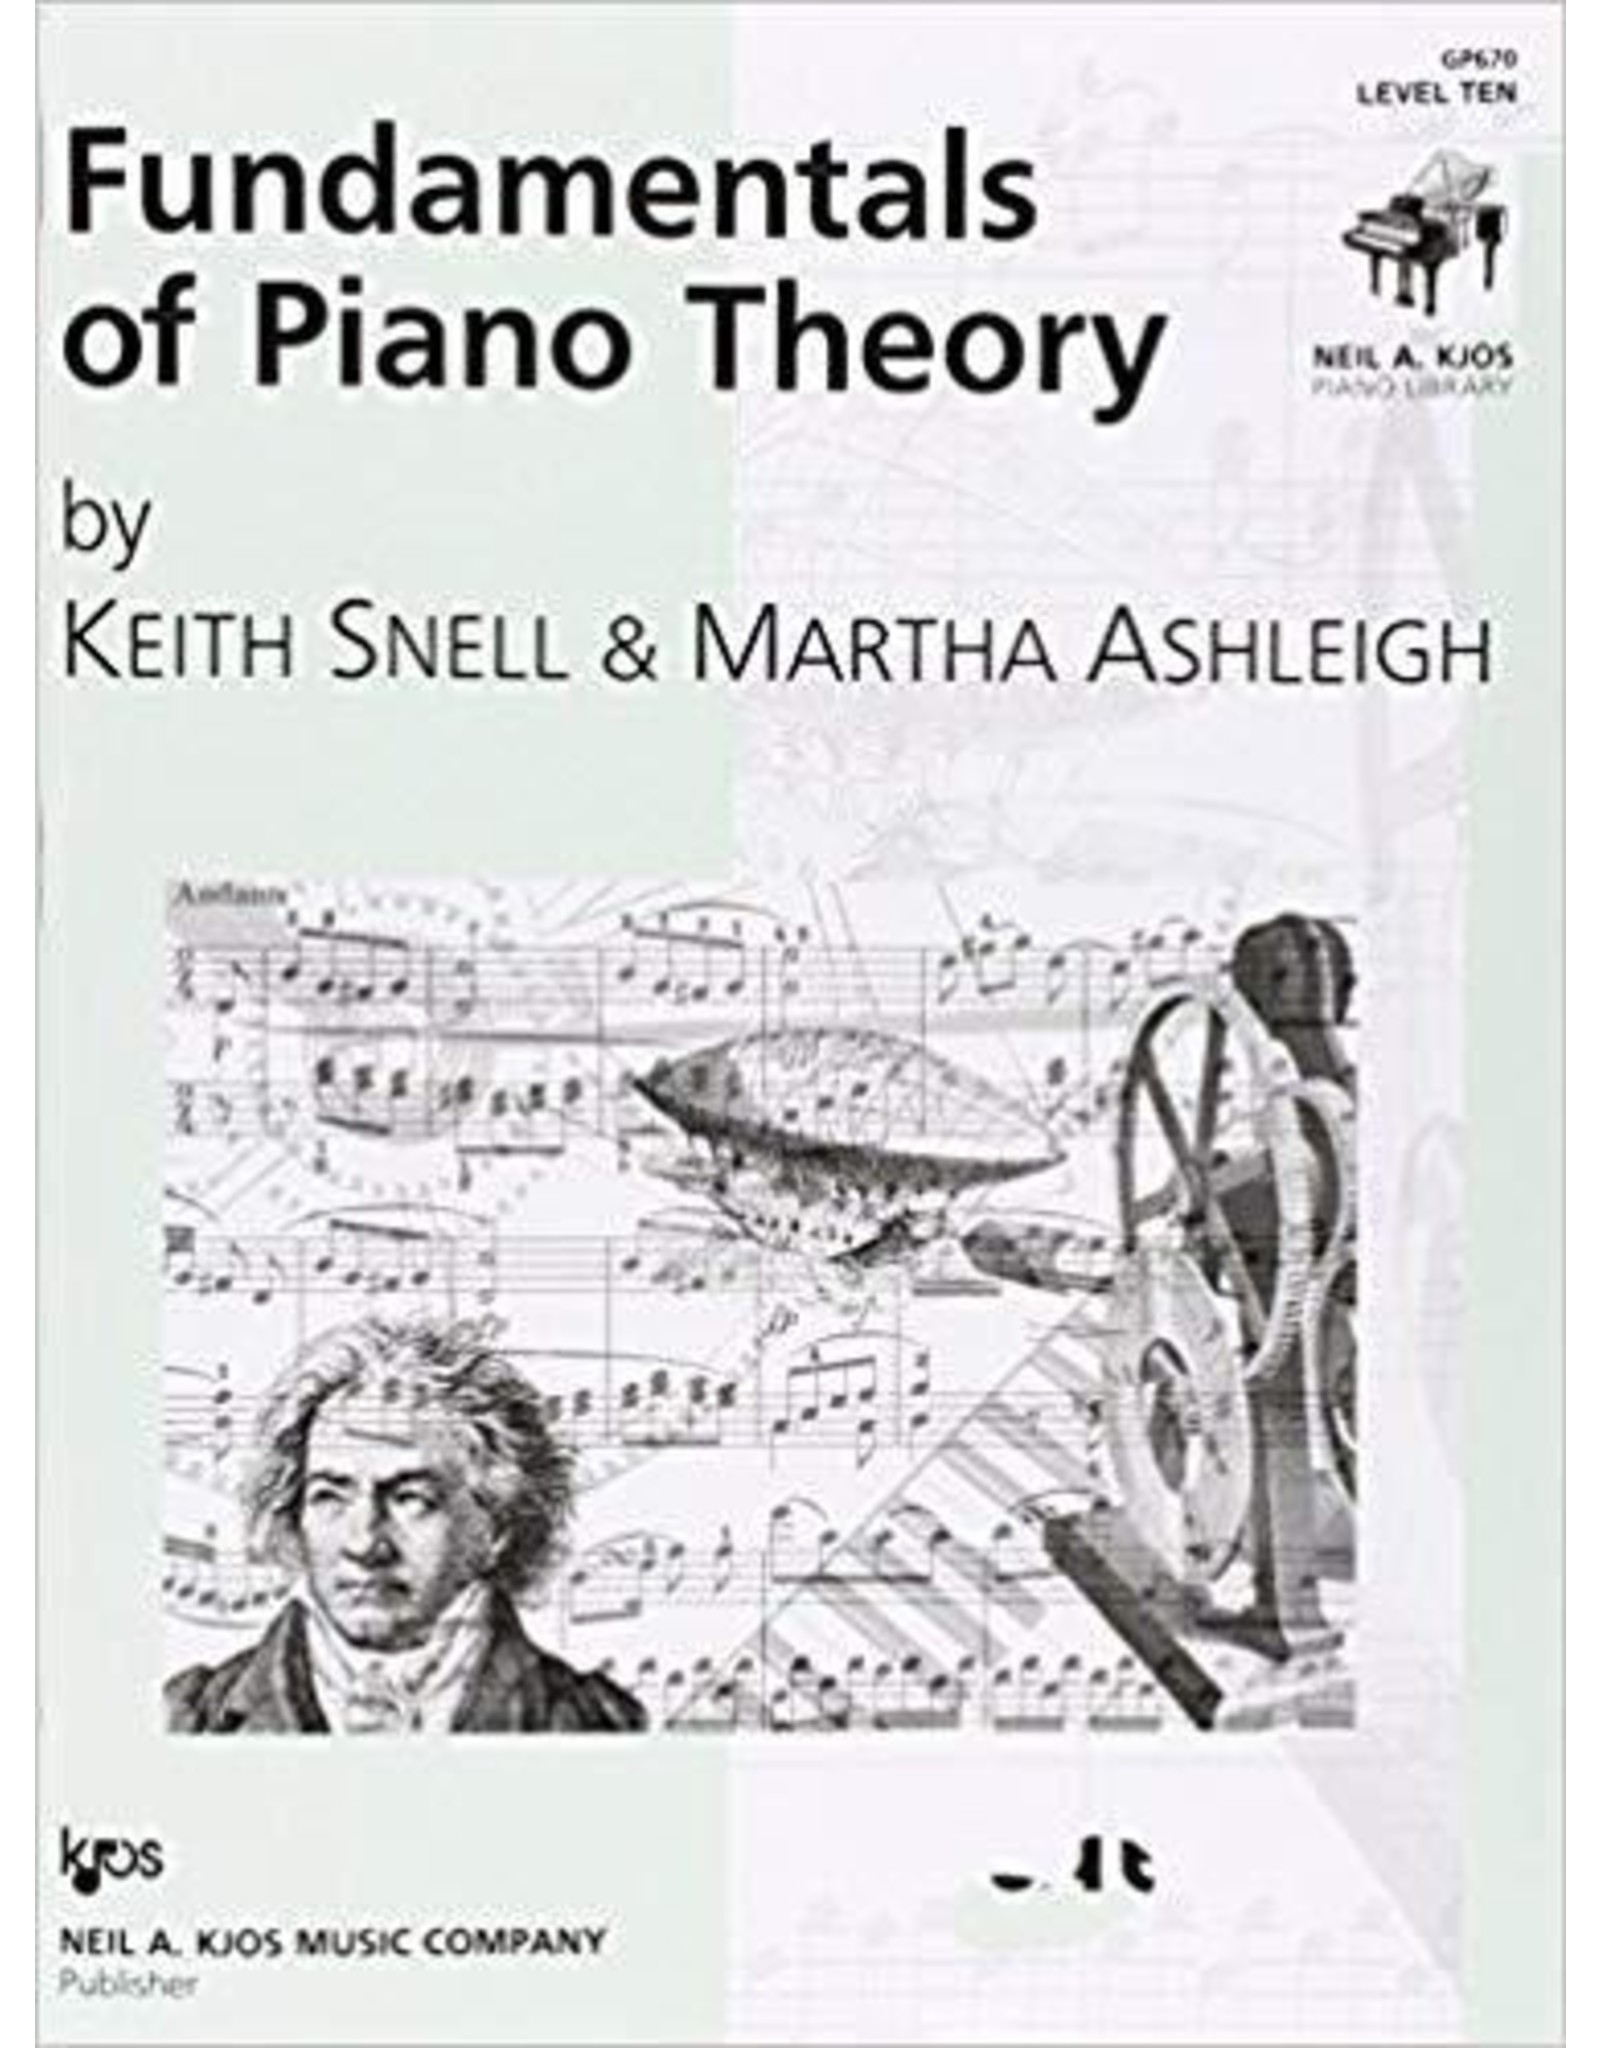 Kjos Fundamentals of Piano Theory, Level 10 Keith Snell